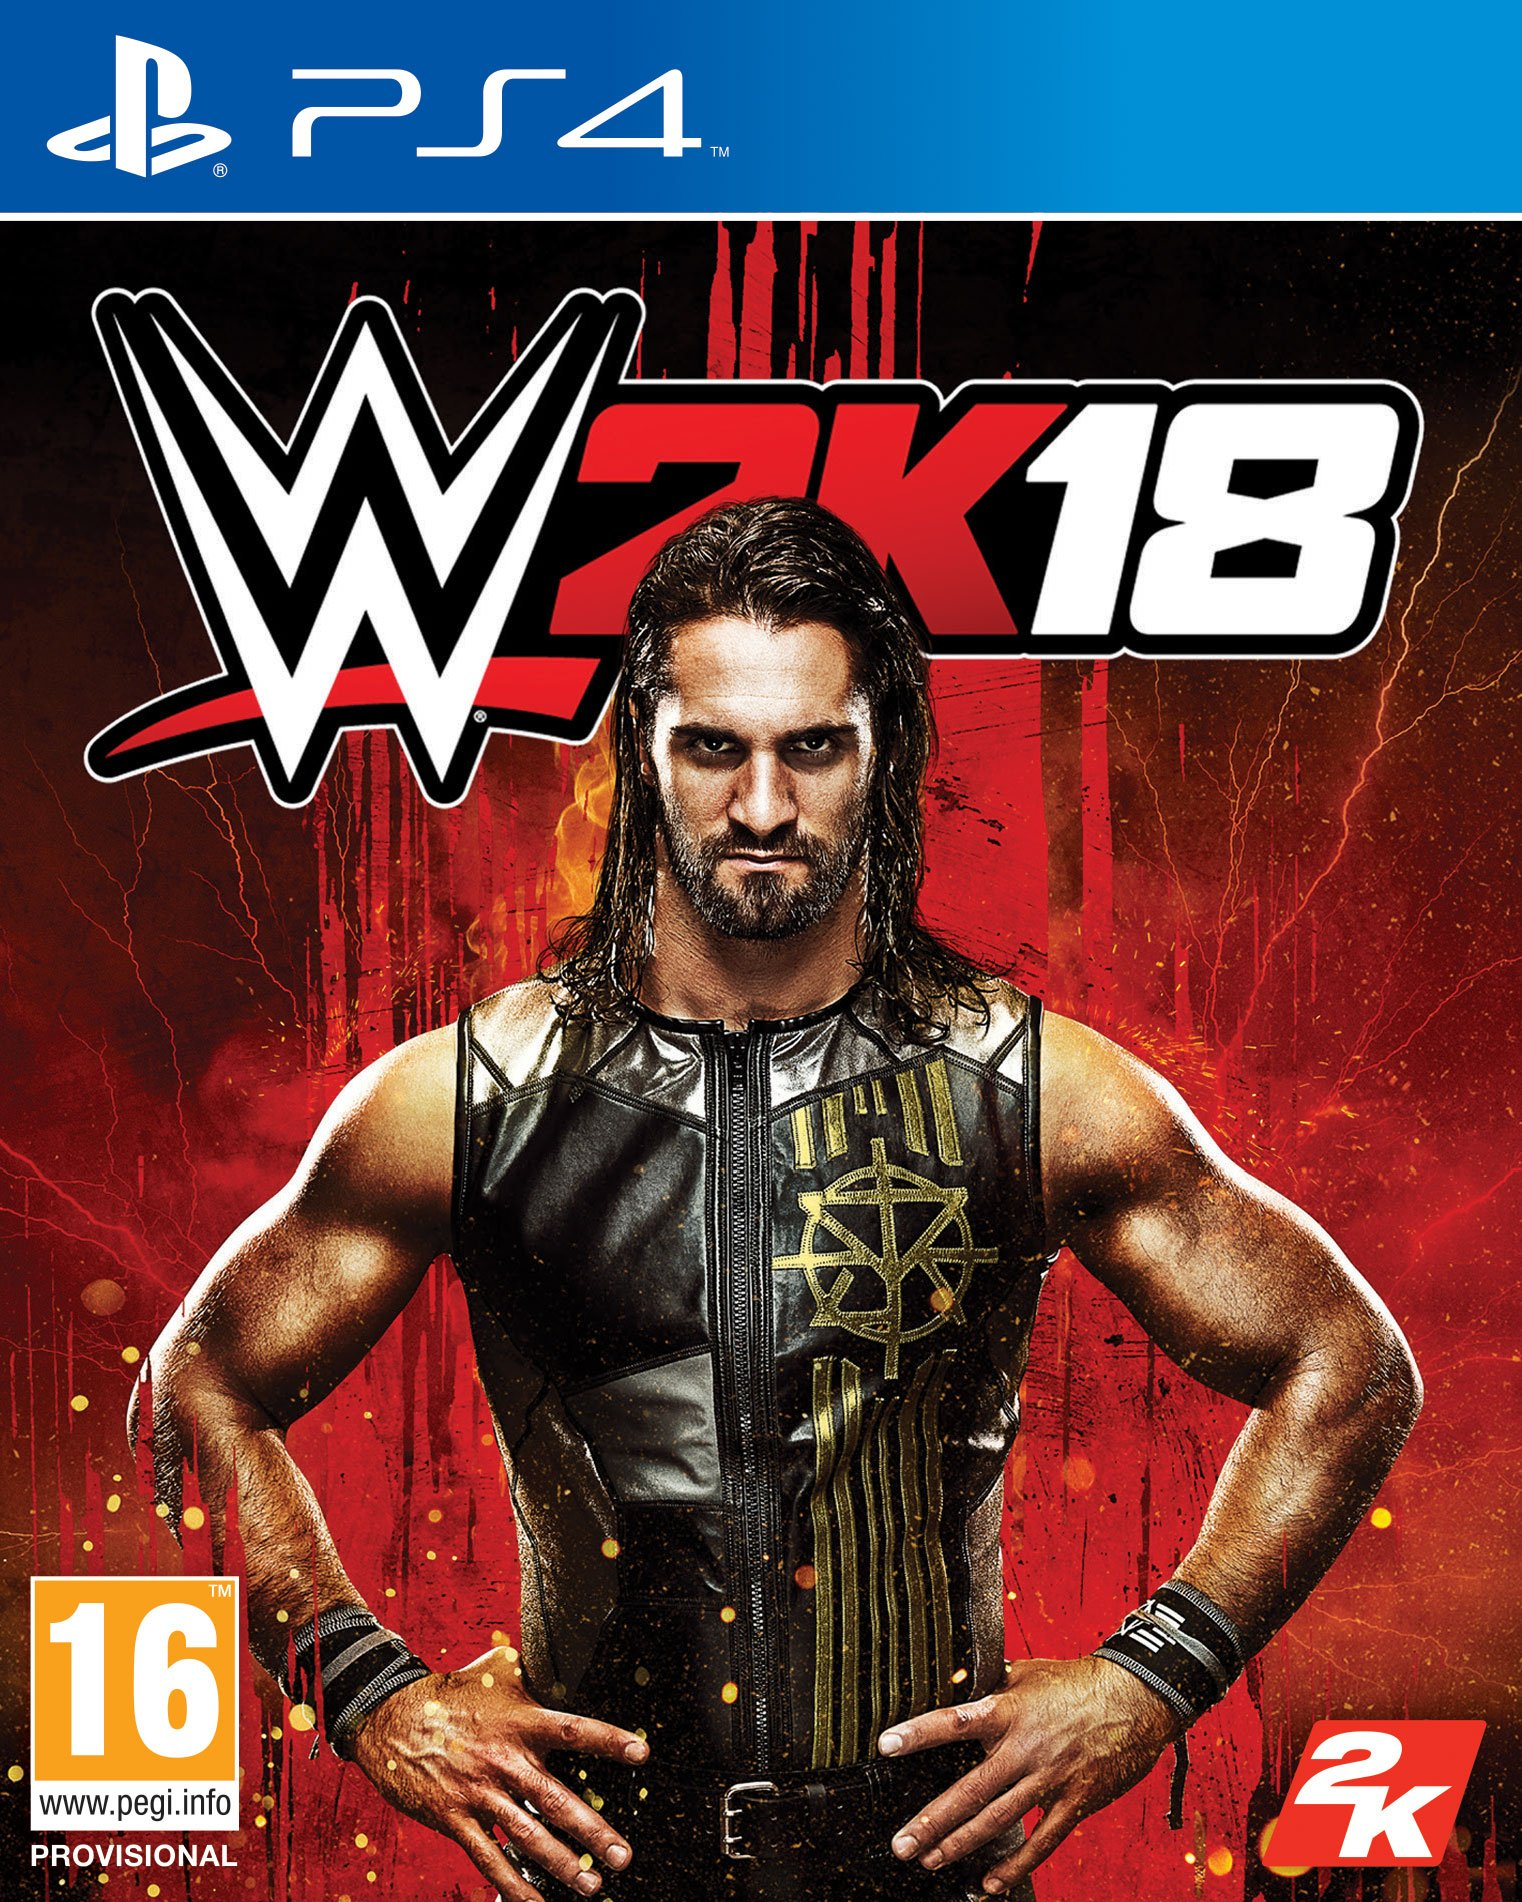 WWE video game giveaway - WWE2K18